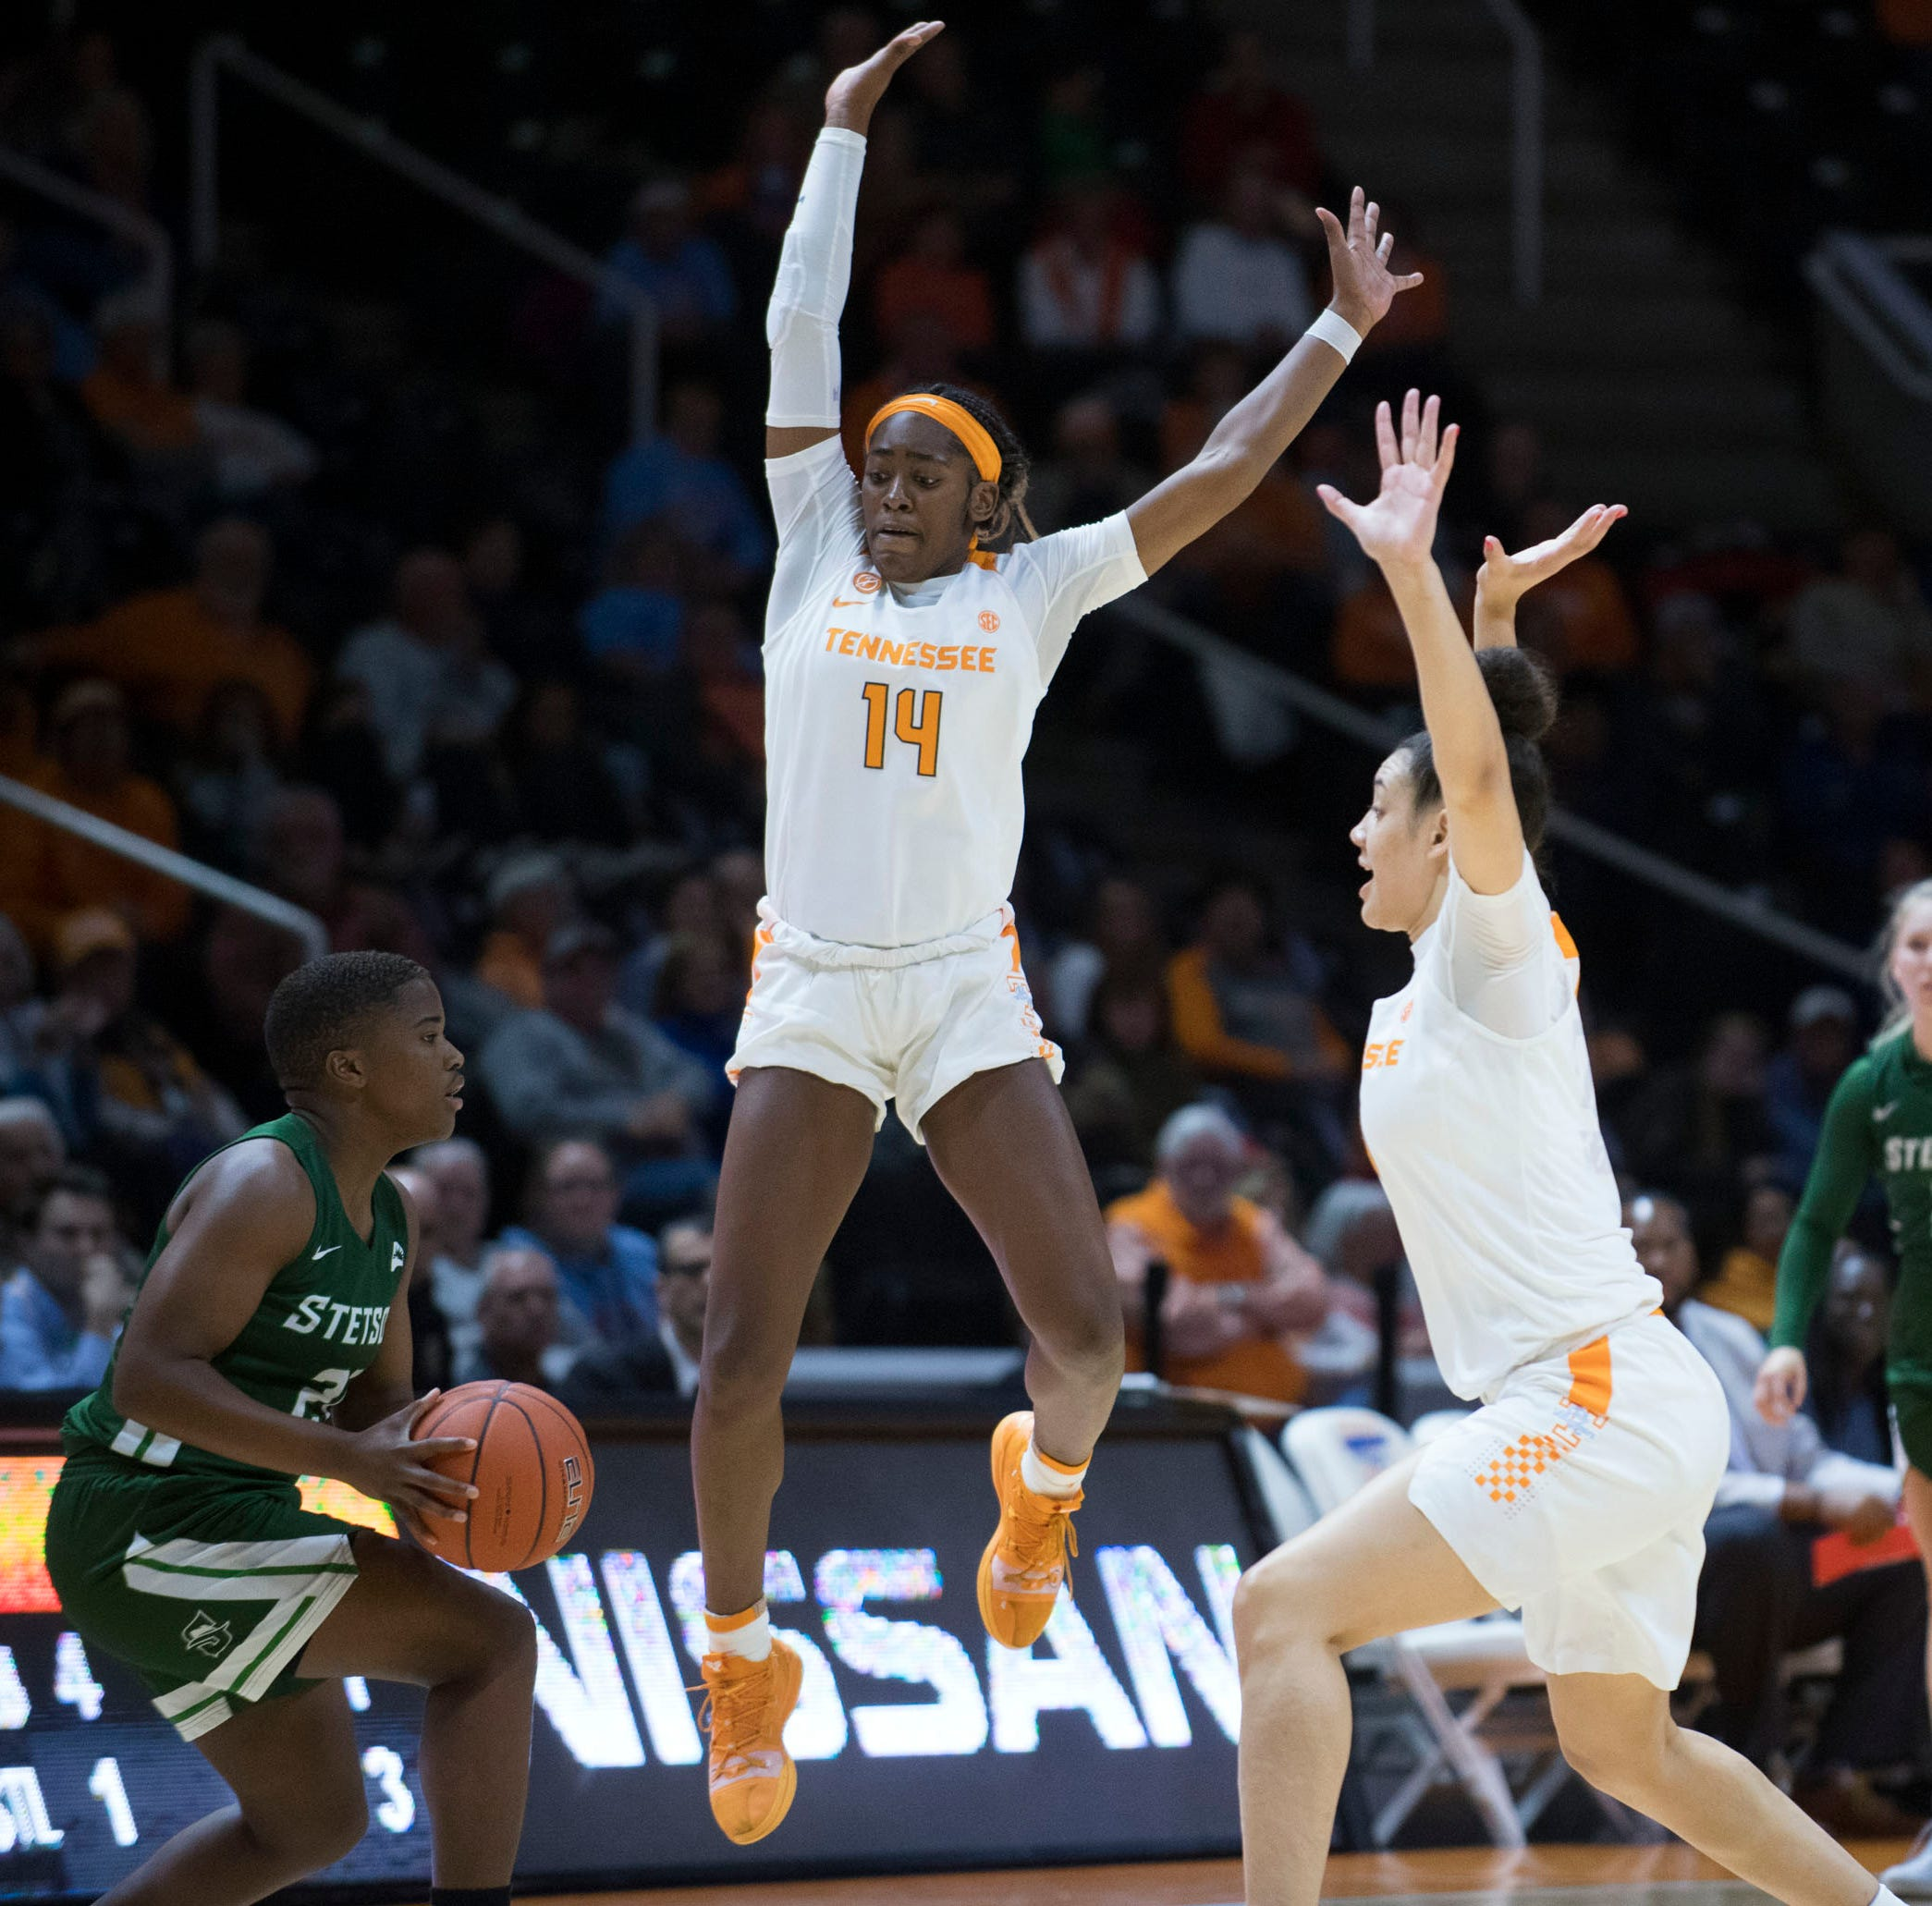 UT Lady Vols beat Texas 88-82 in the 40th edition of women's basketball rivalry